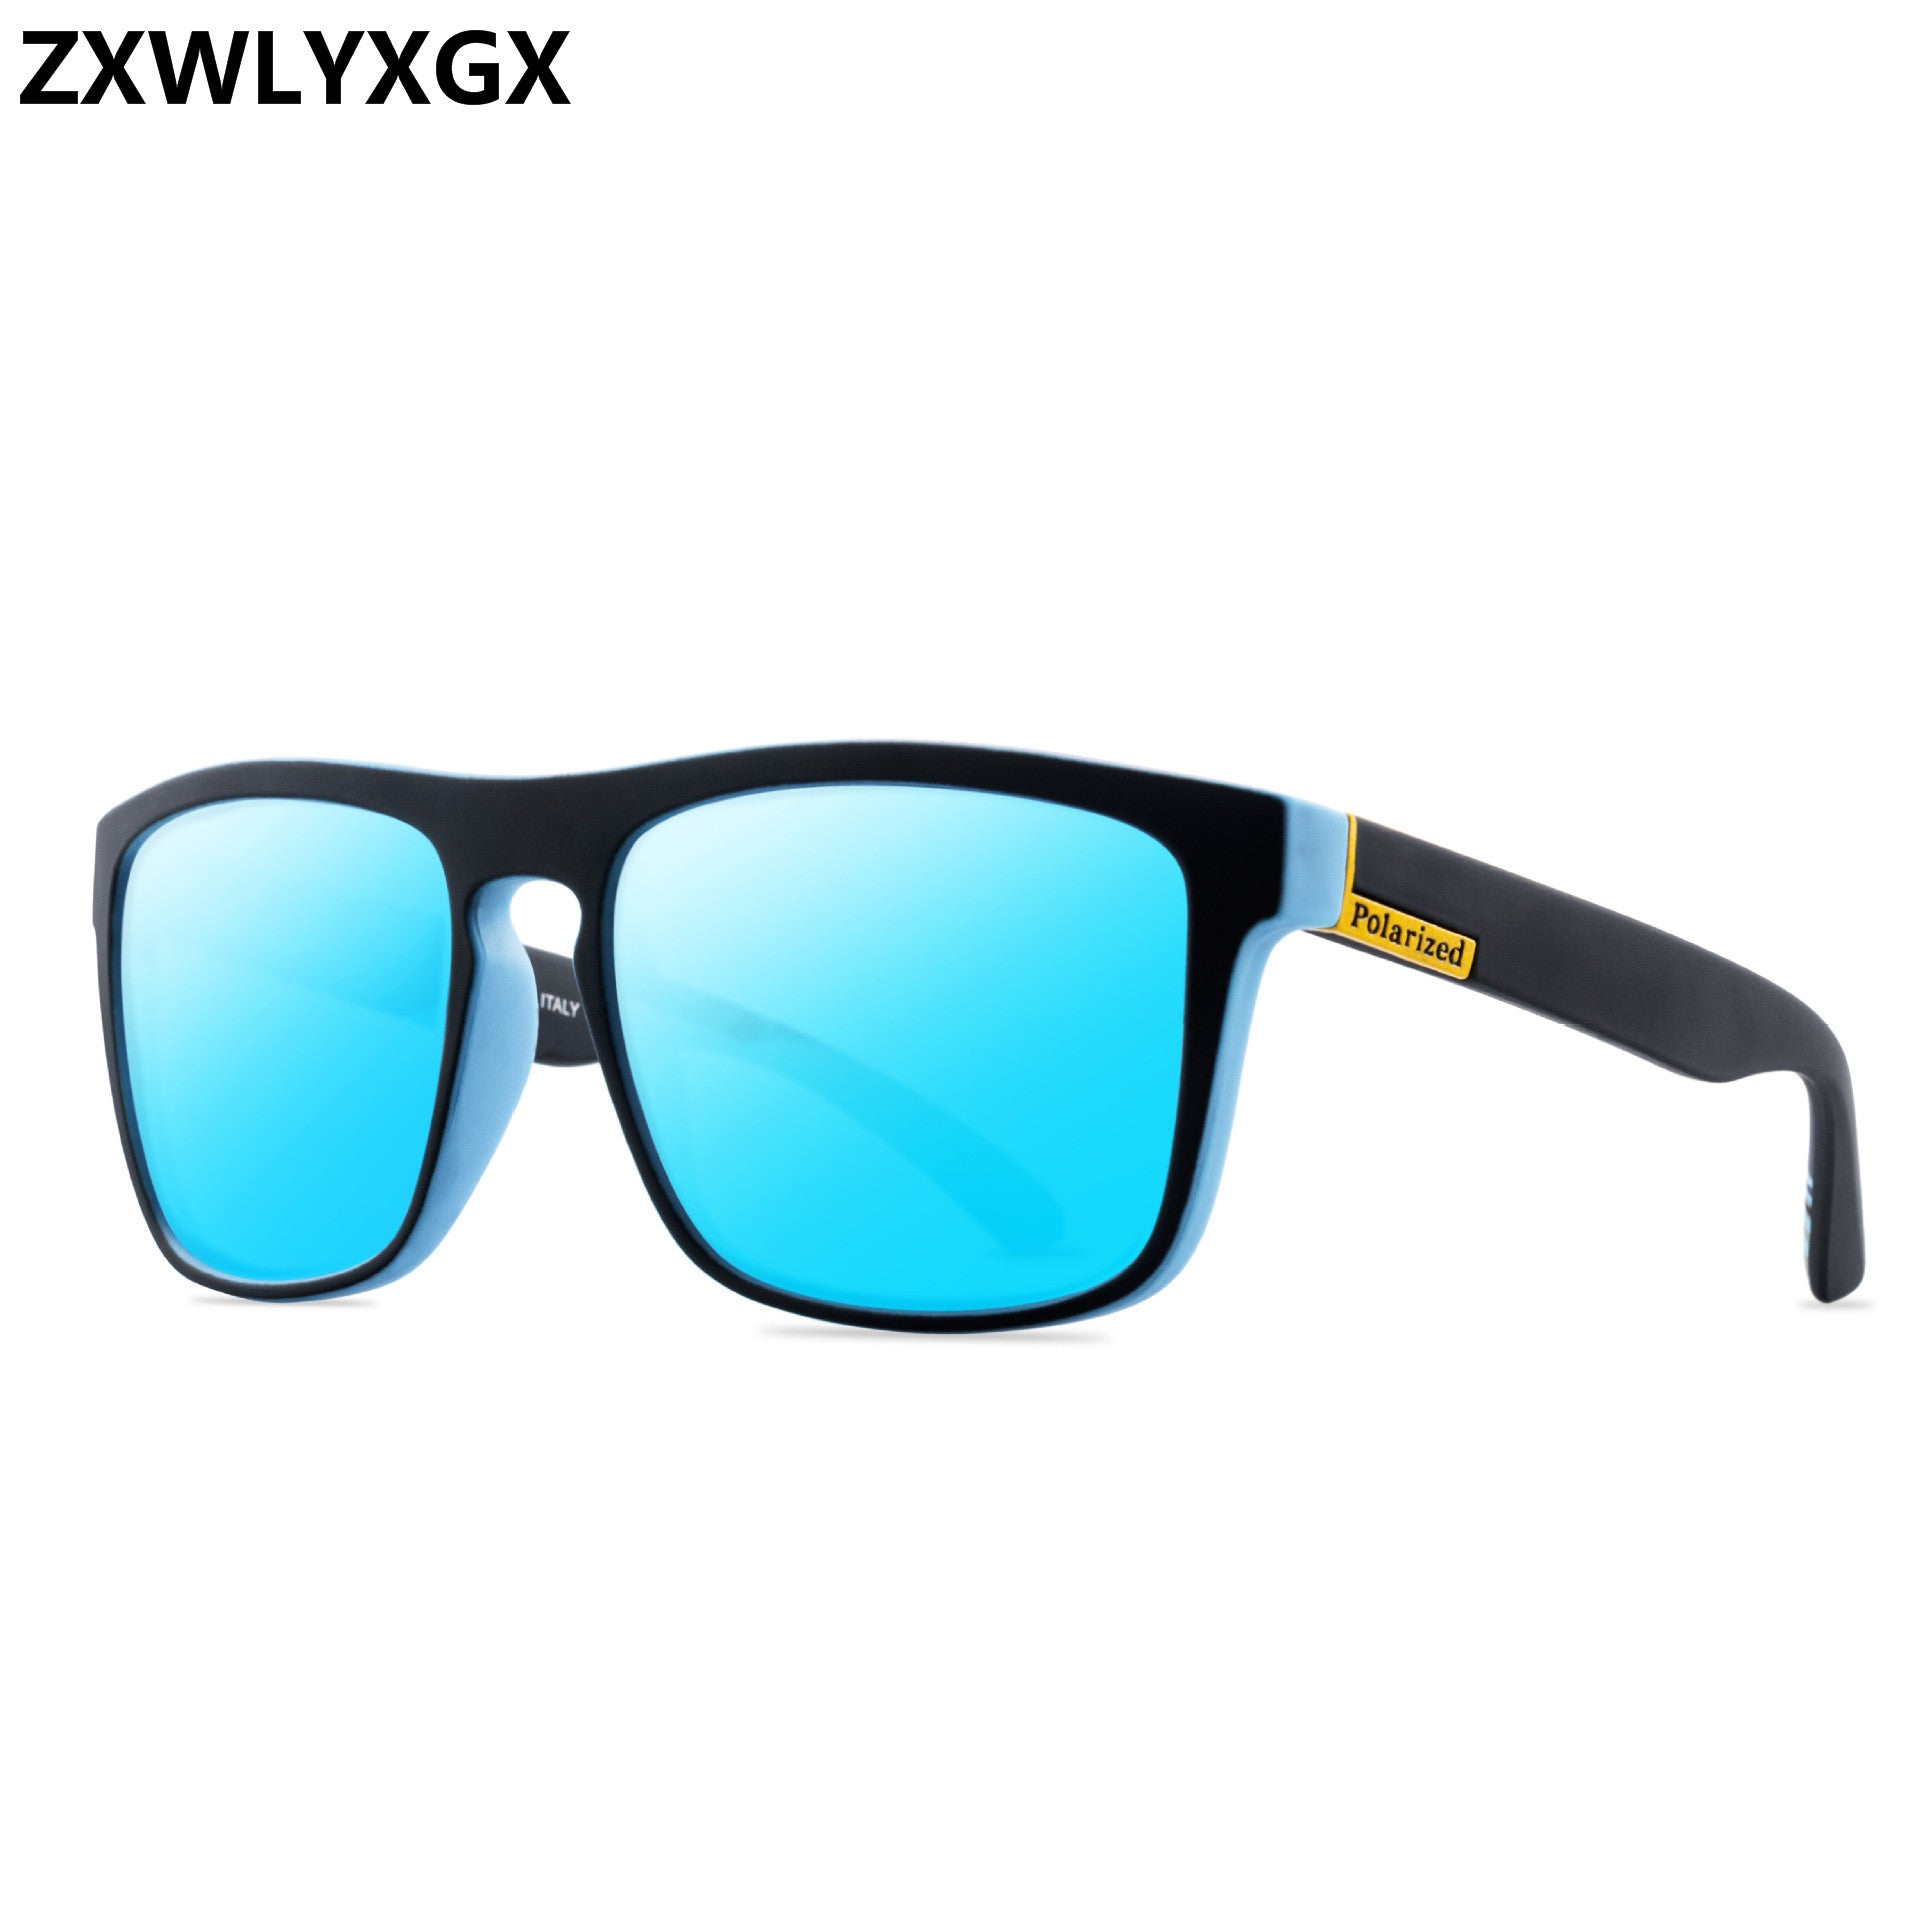 Men Luxury Brand Designer Polarized Sunglasses UV400 - asheers4u